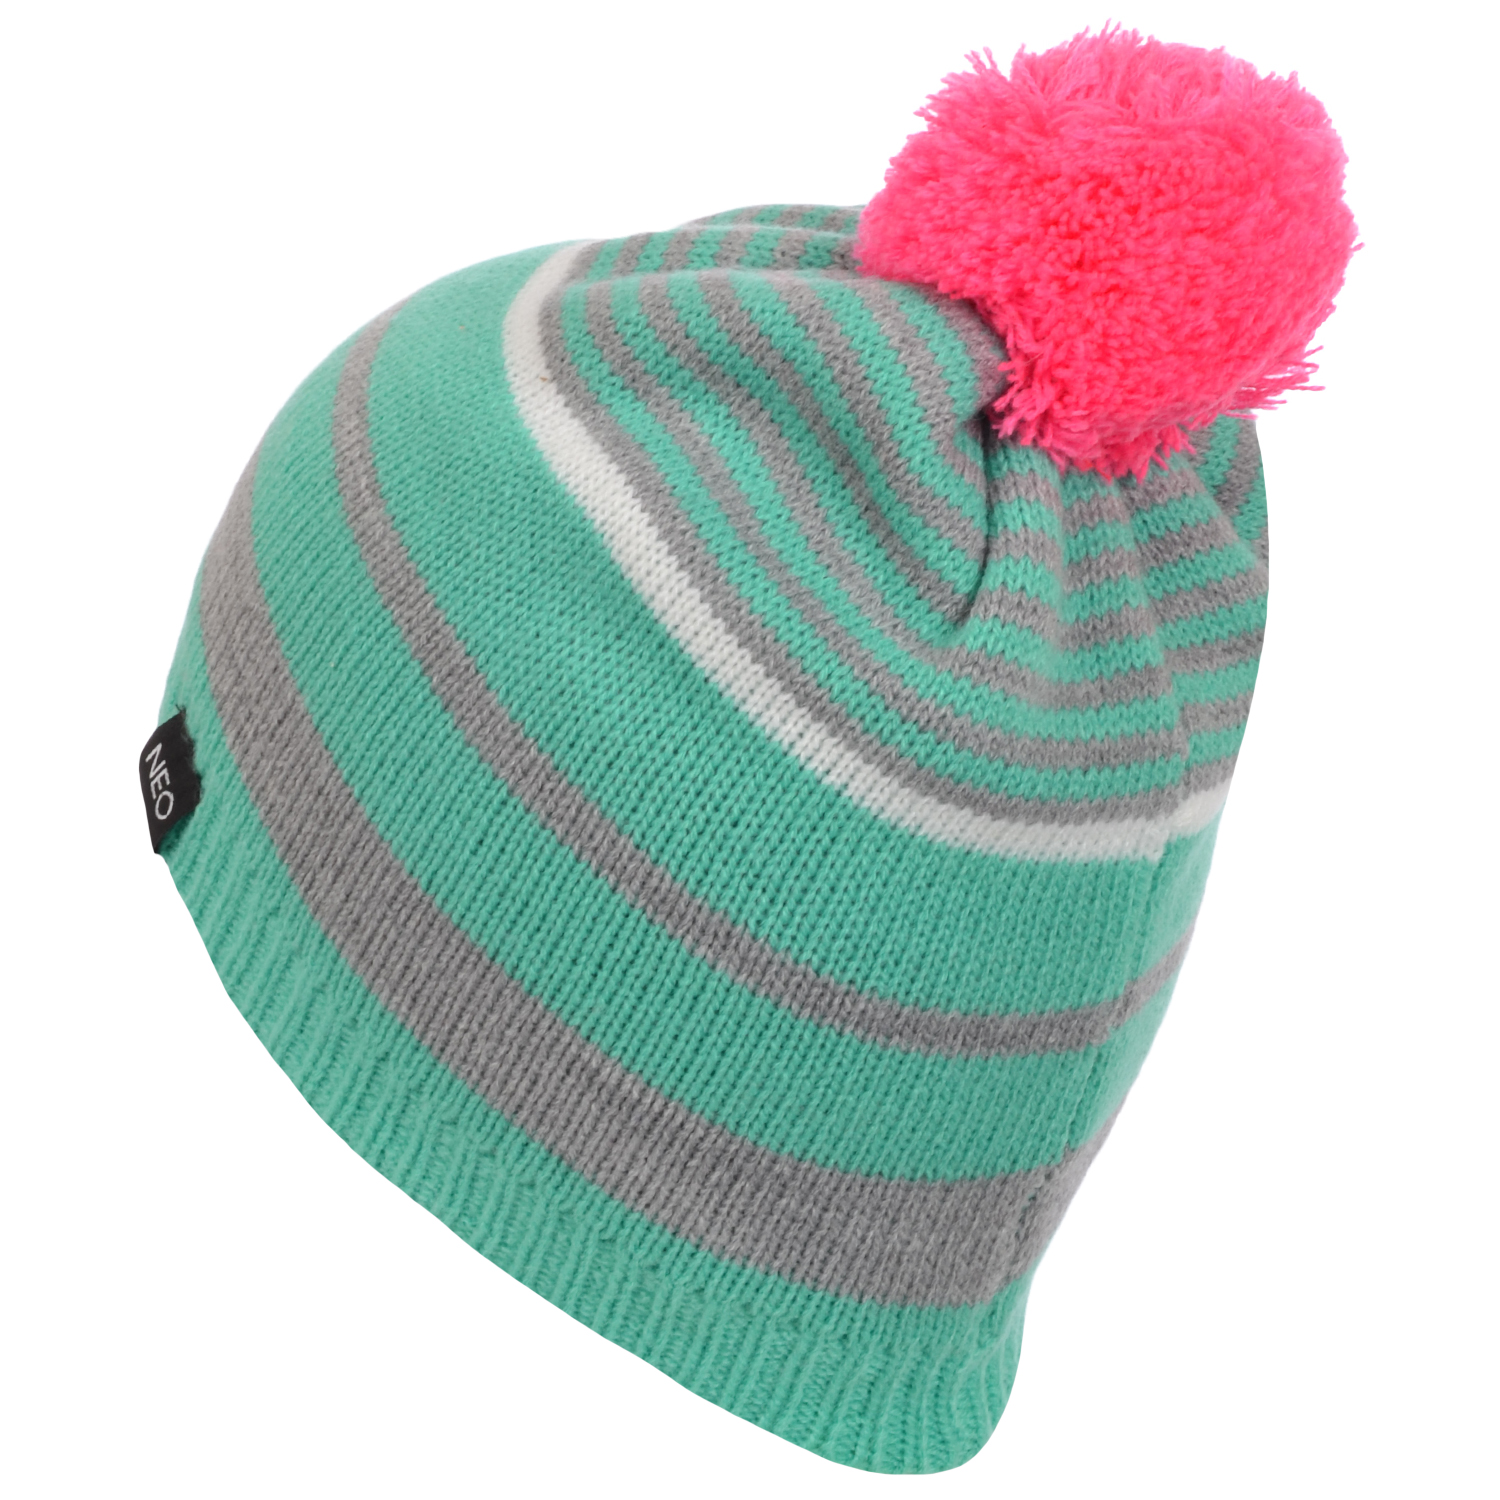 adidas neo hat 4a786d